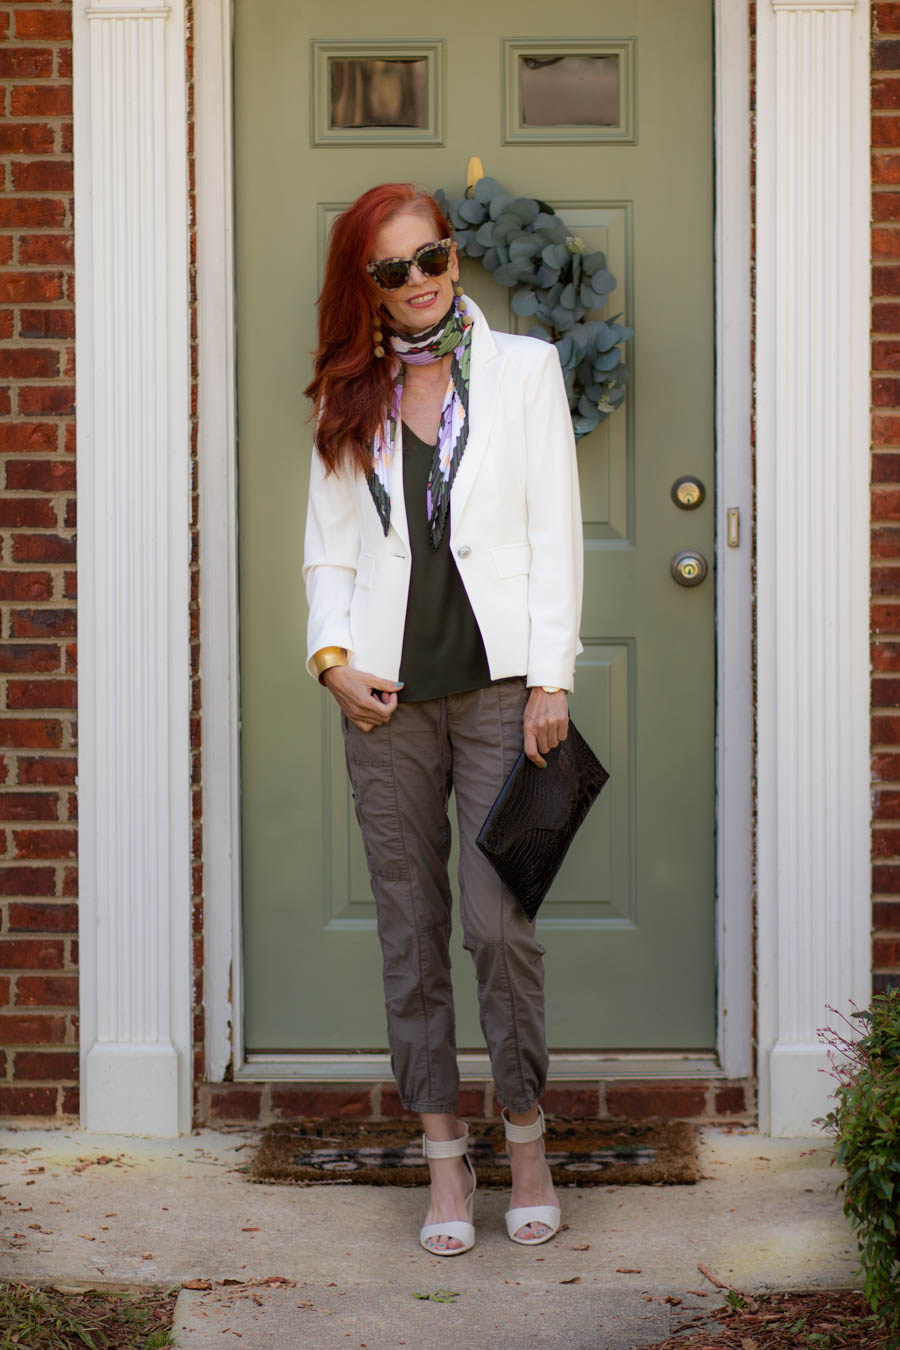 Floral print scarf with off white blazer